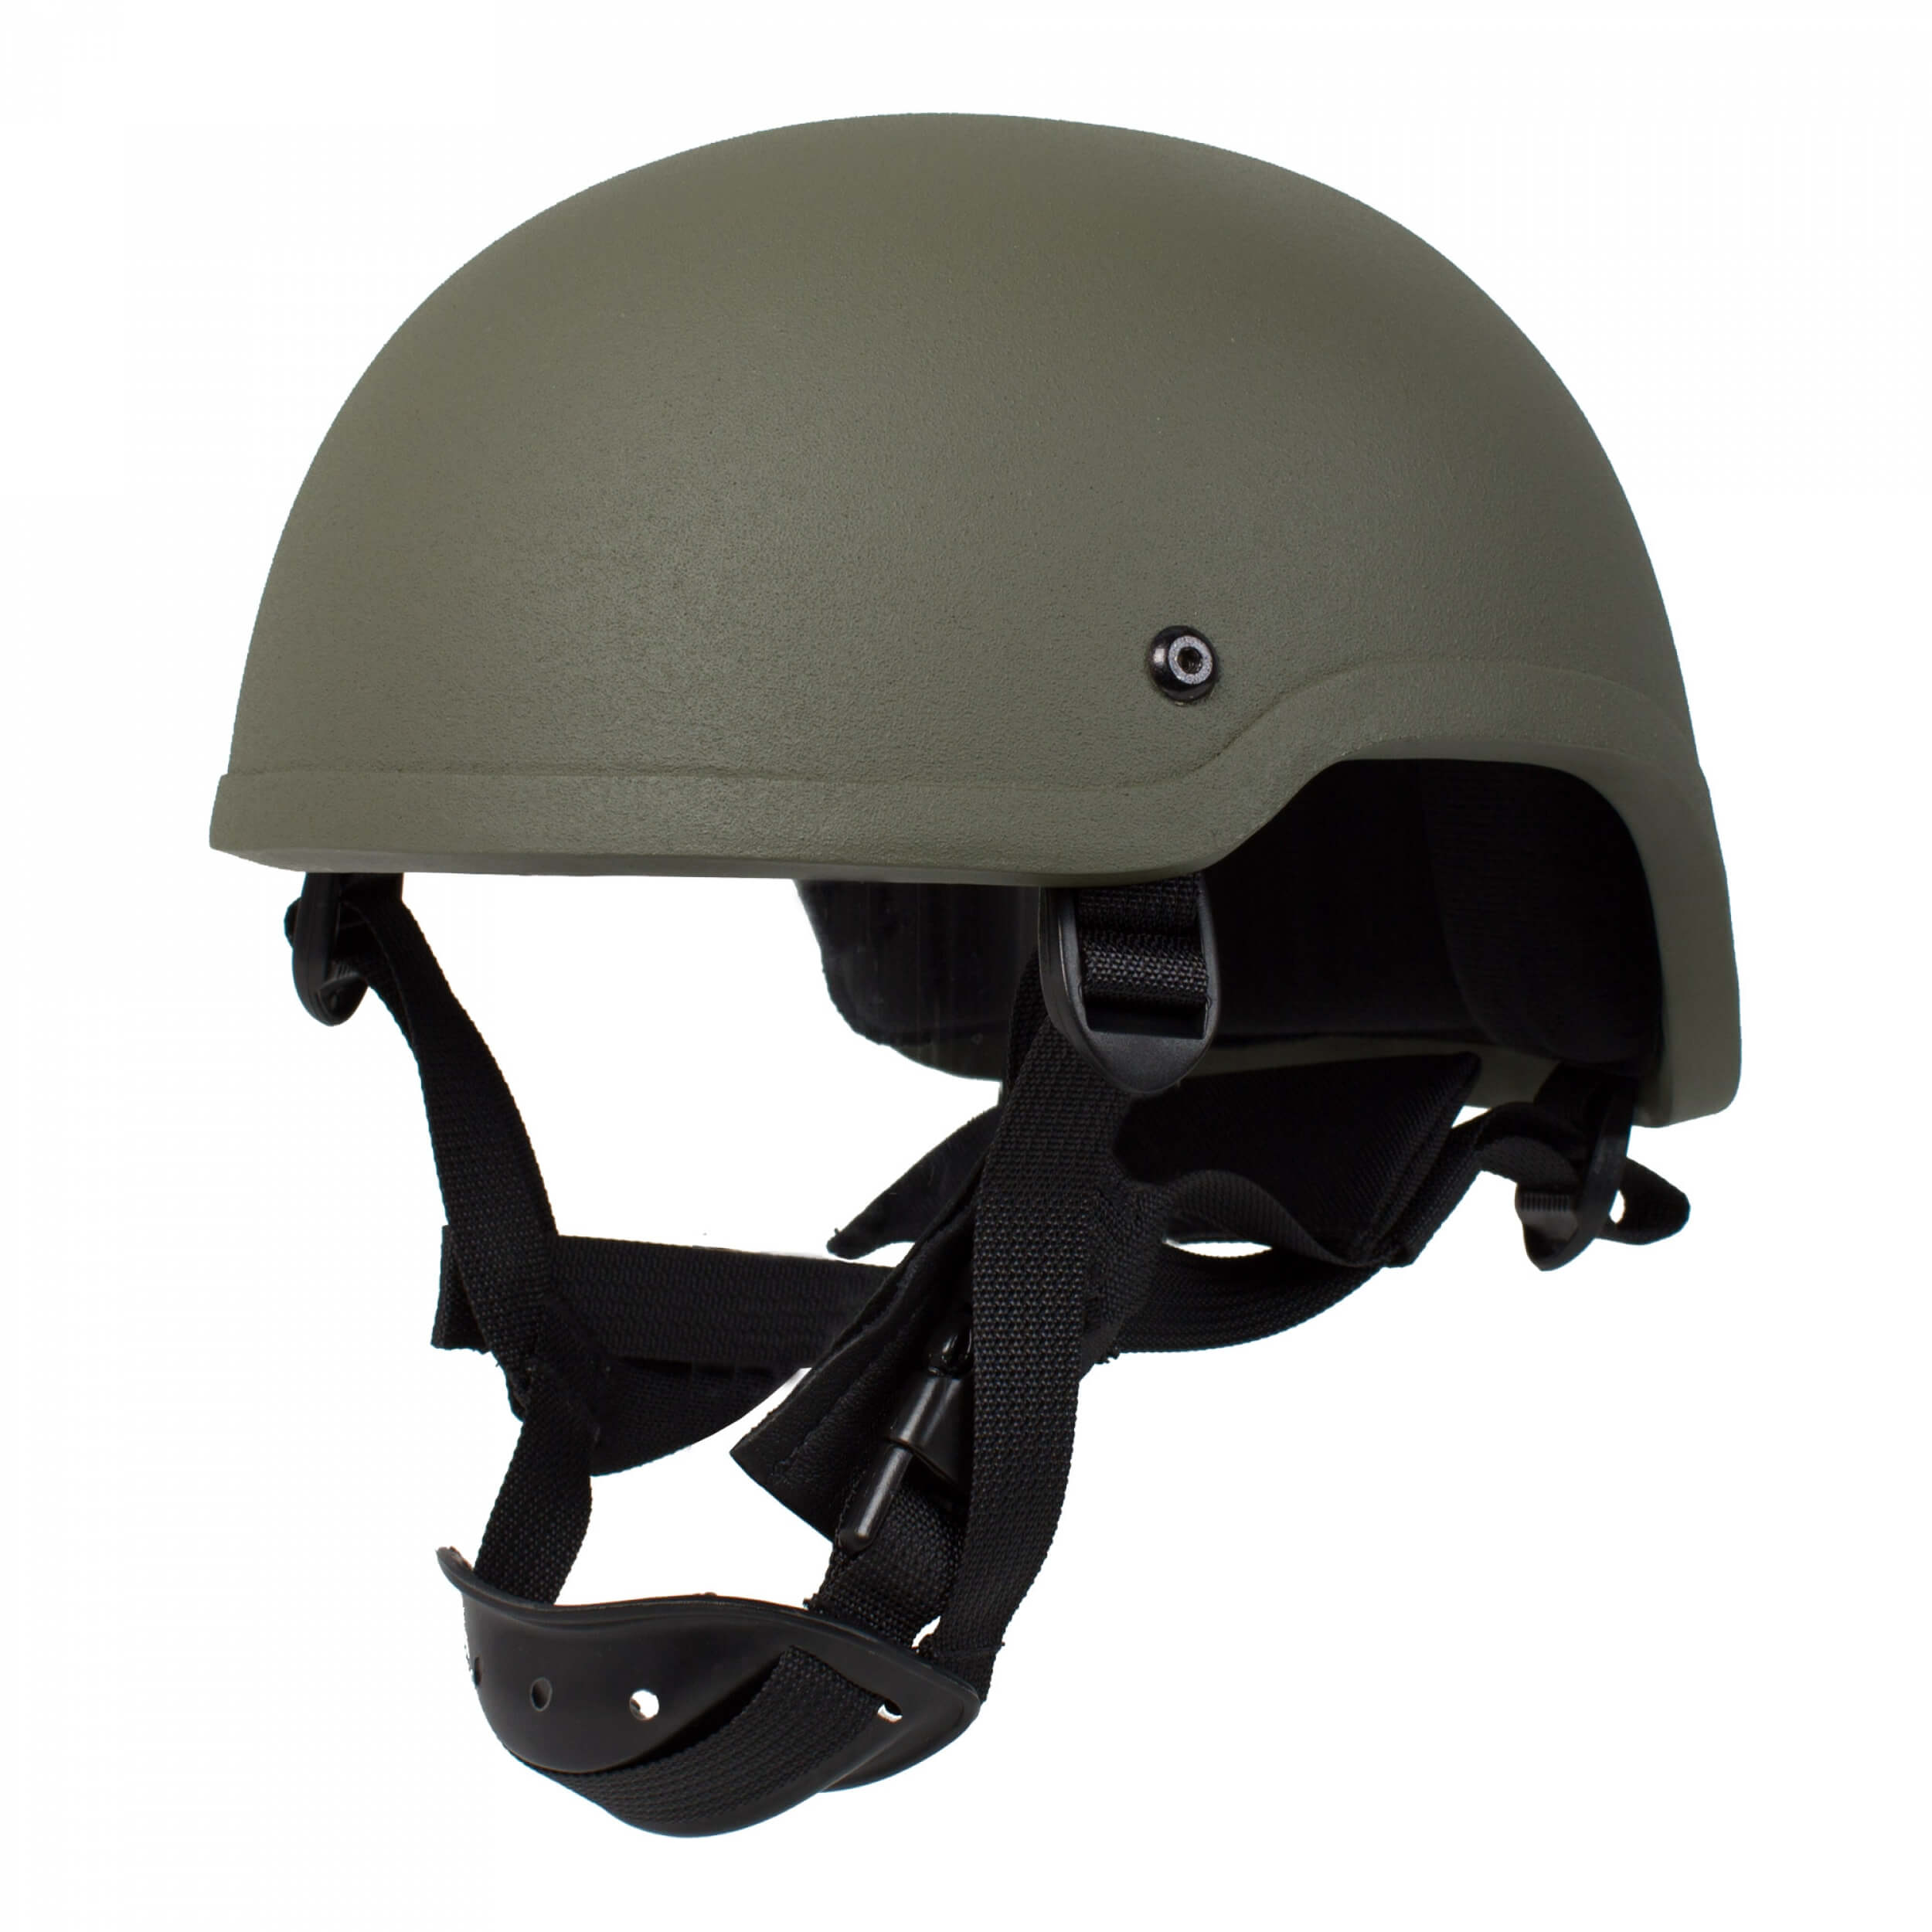 HCS Special Forces Helm mit Pads Oliv